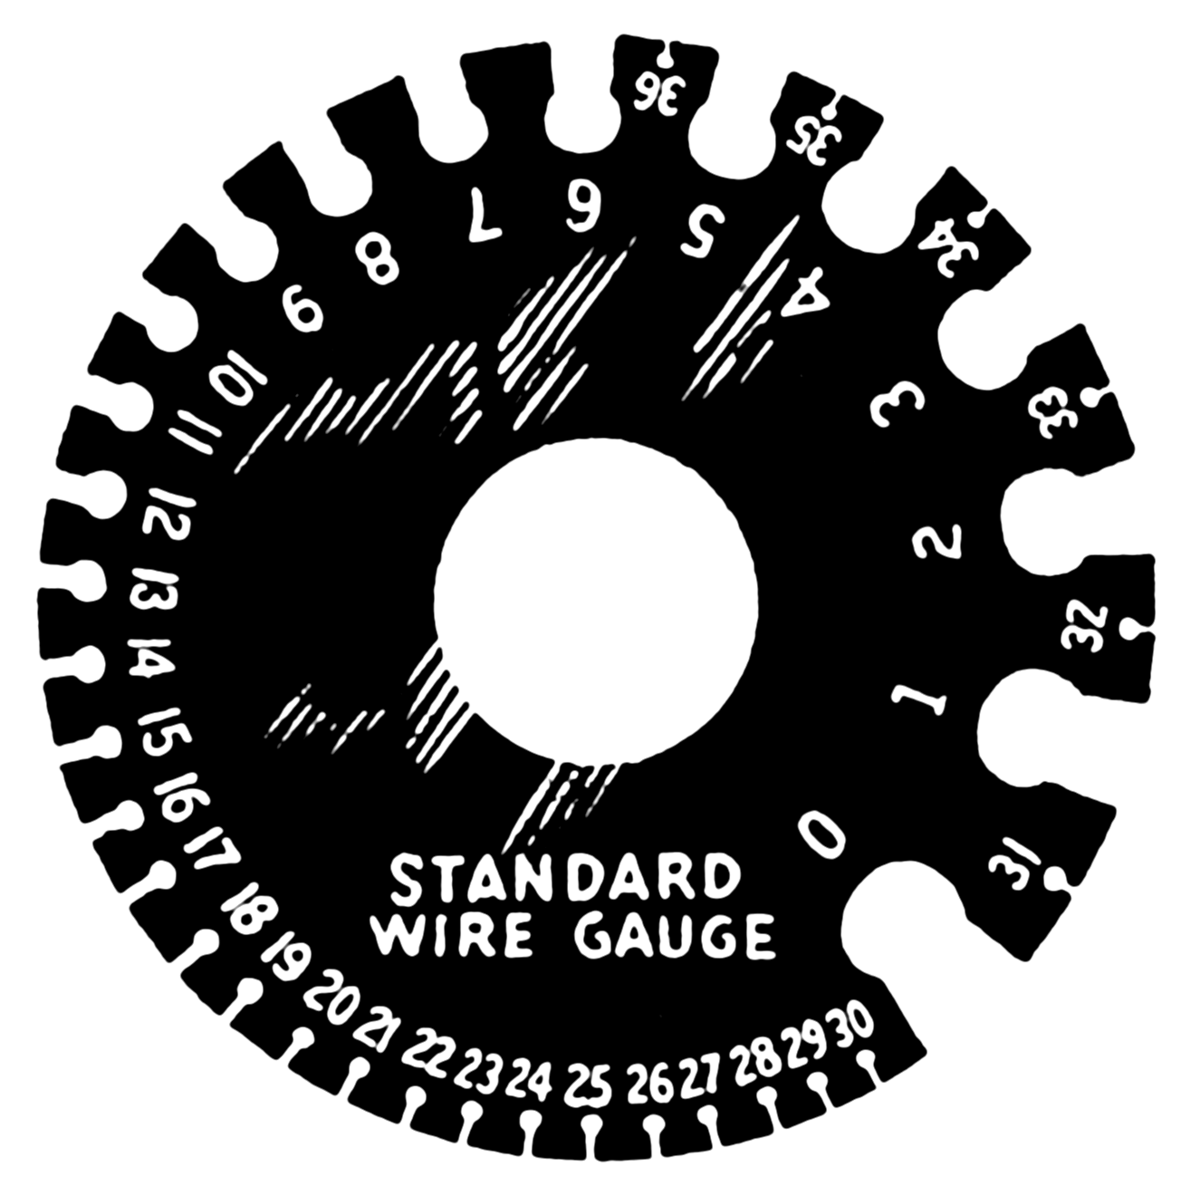 Standard wire gauge wikipedia greentooth Gallery